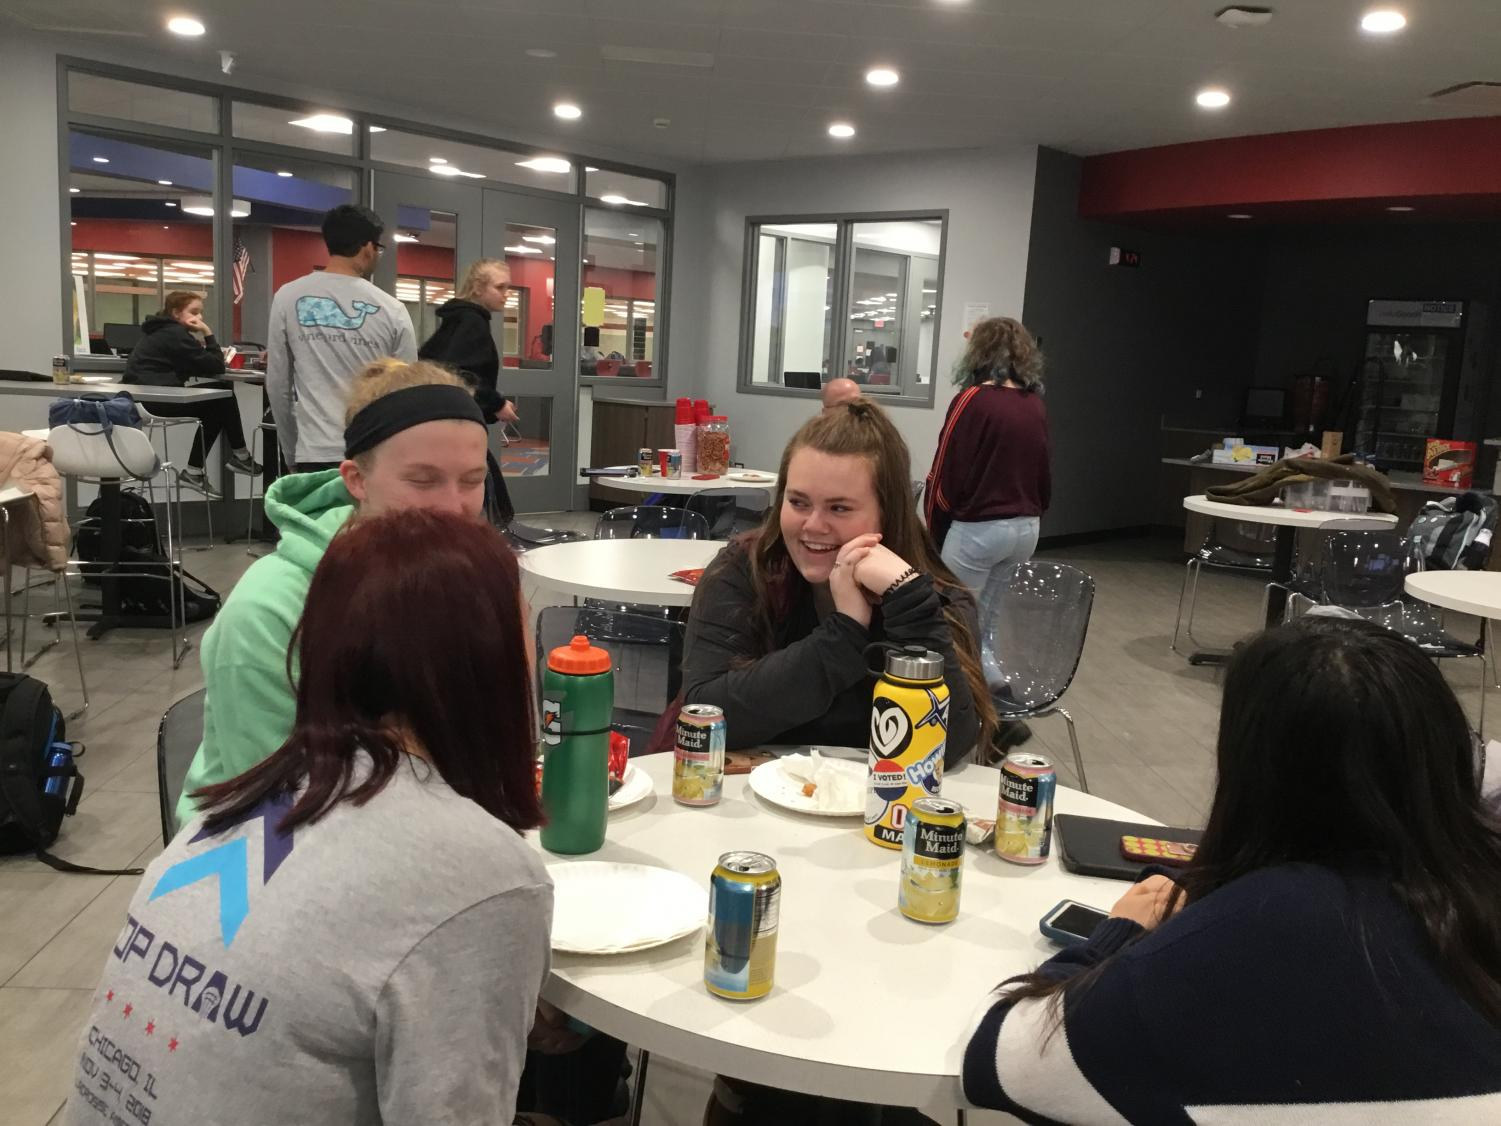 (From left) Jane Spencer, Haley Holz, Caroline Philbin, and Fidan Malikova talking at a Cutlass meeting.